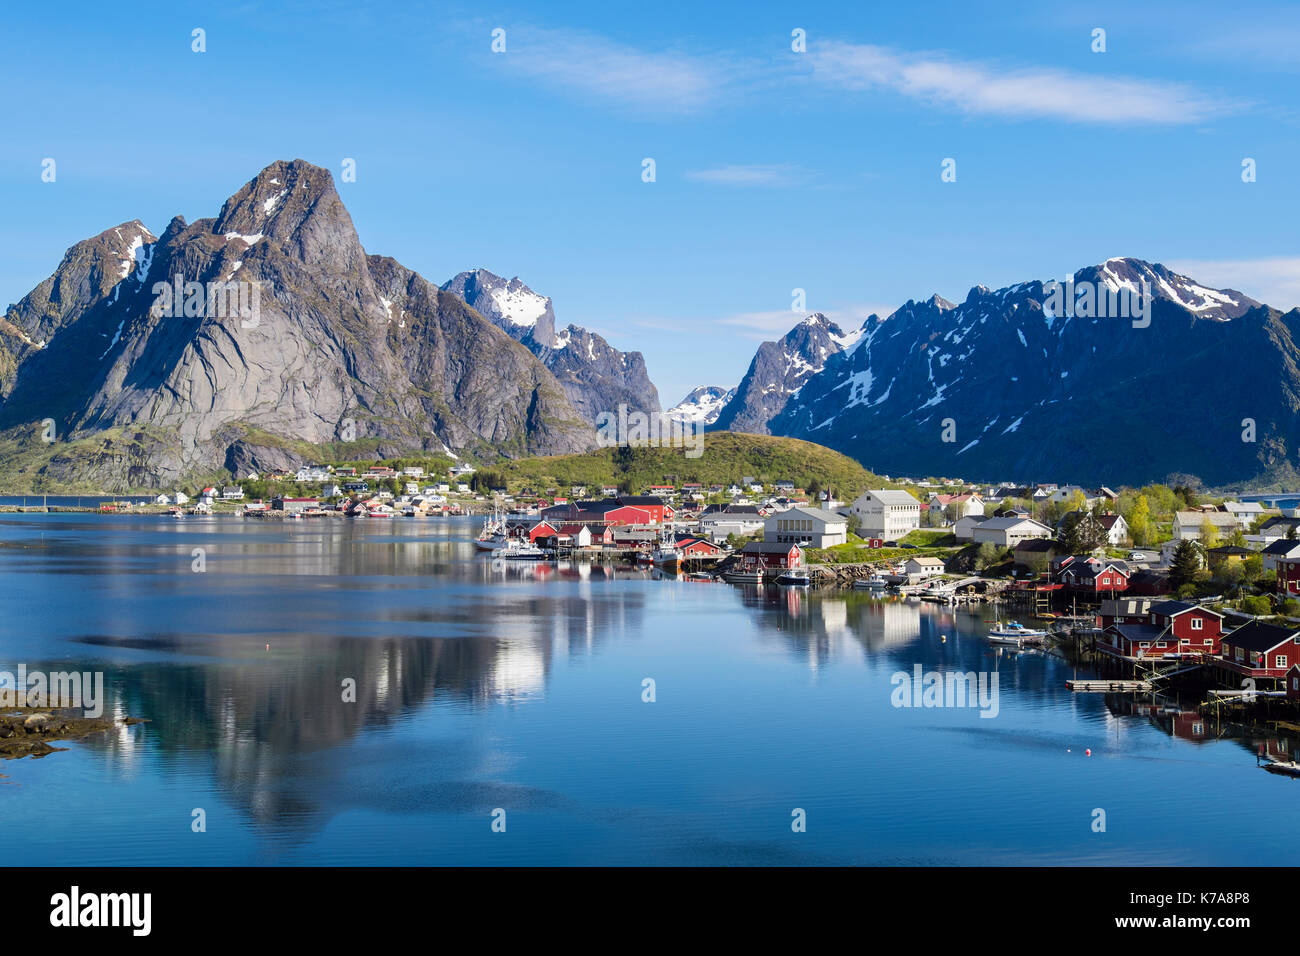 Reflections of mountains in scenic natural fishing harbour in summer. Reine, Moskenes, Moskenesøya Island, Lofoten Islands, Nordland, Norway - Stock Image